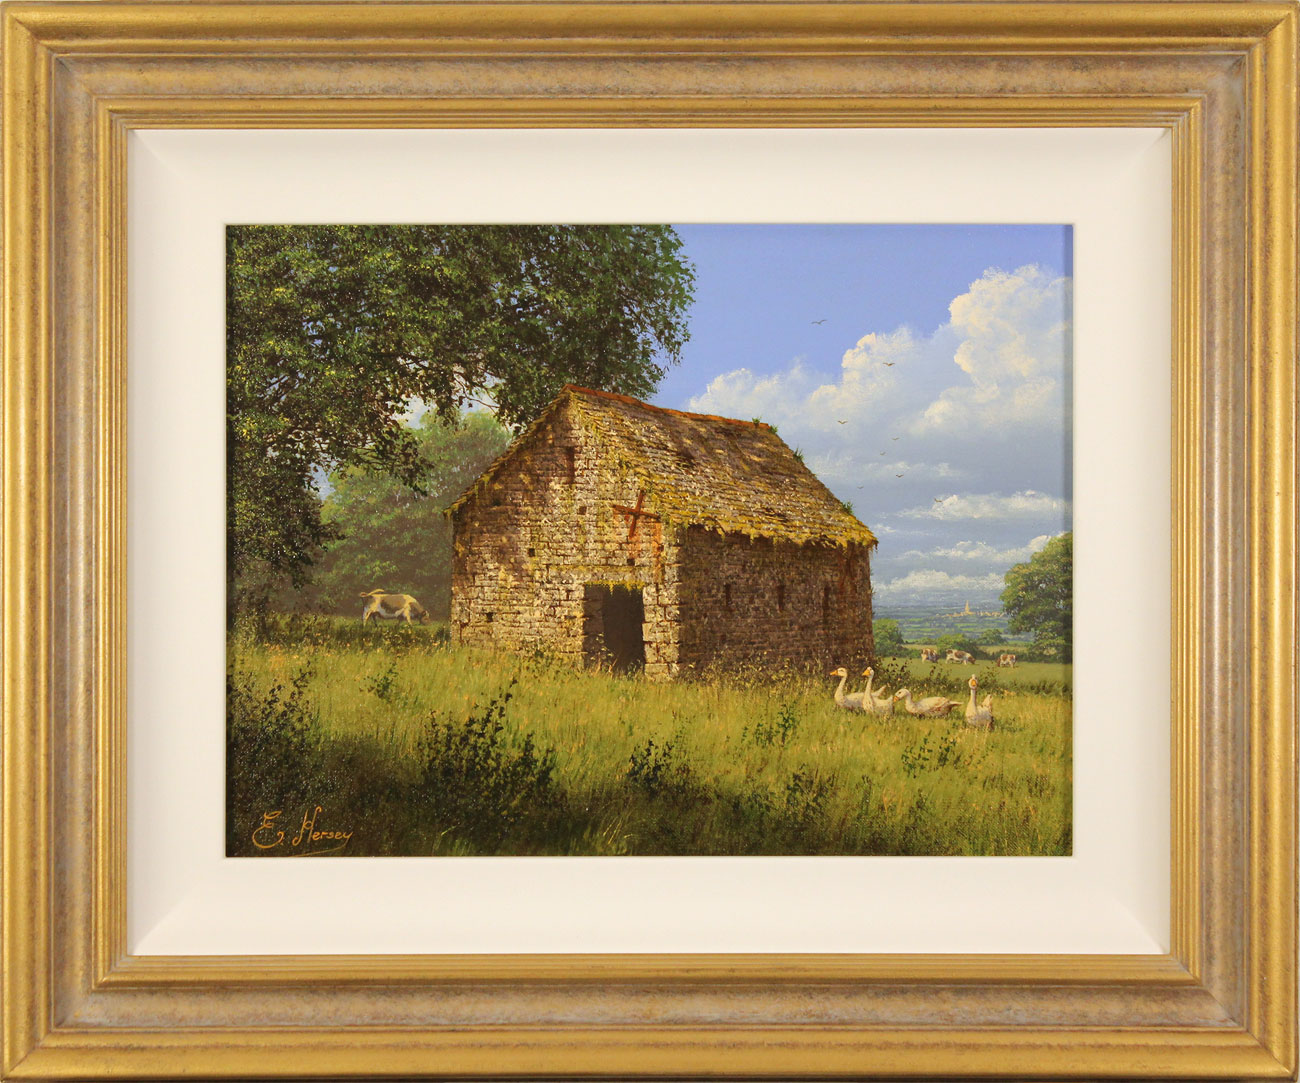 Edward Hersey, Original oil painting on canvas, Summer Solitude. Click to enlarge